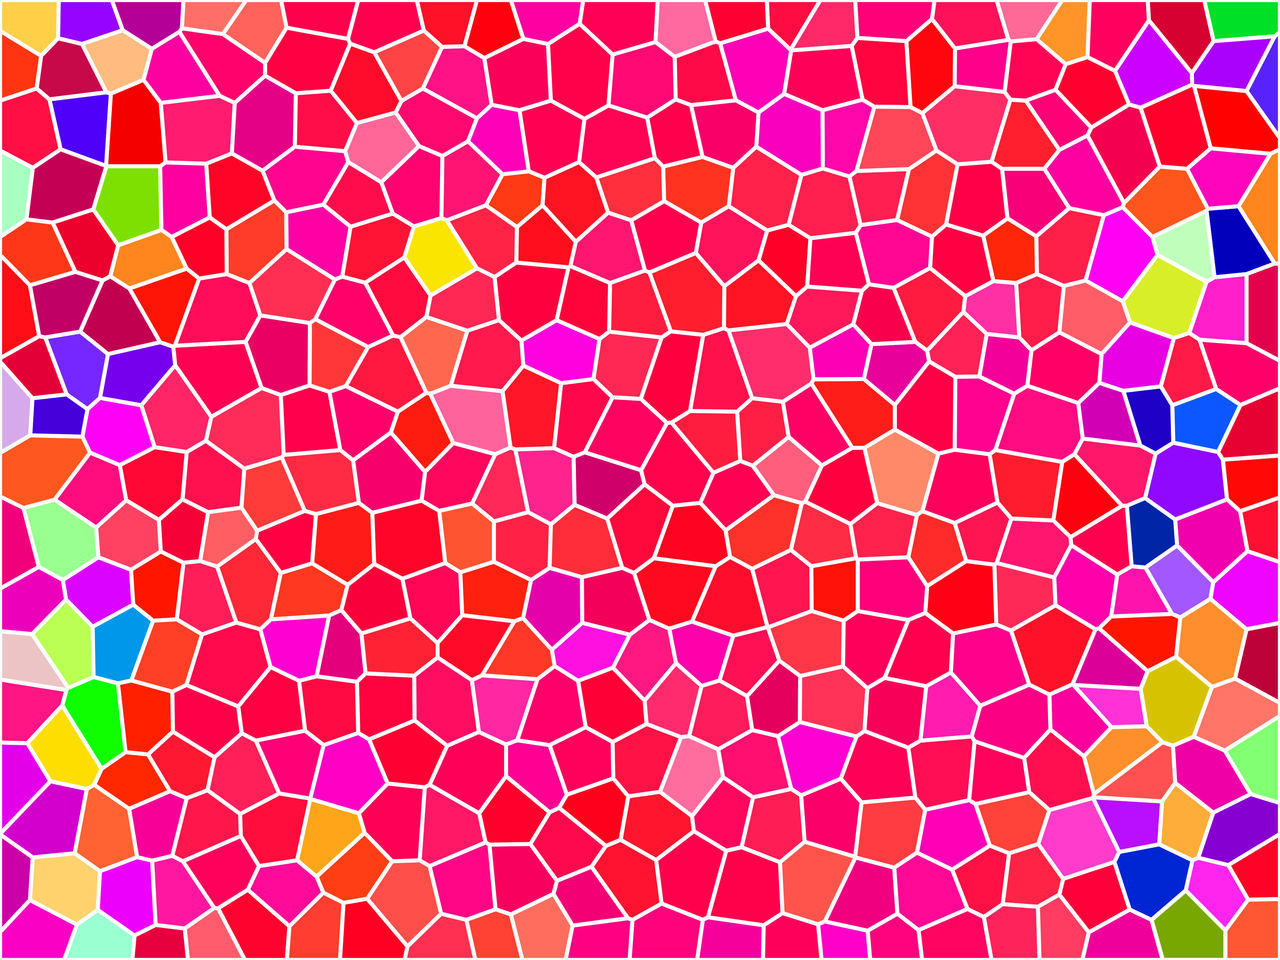 CLOSE-UP OF ABSTRACT PATTERN